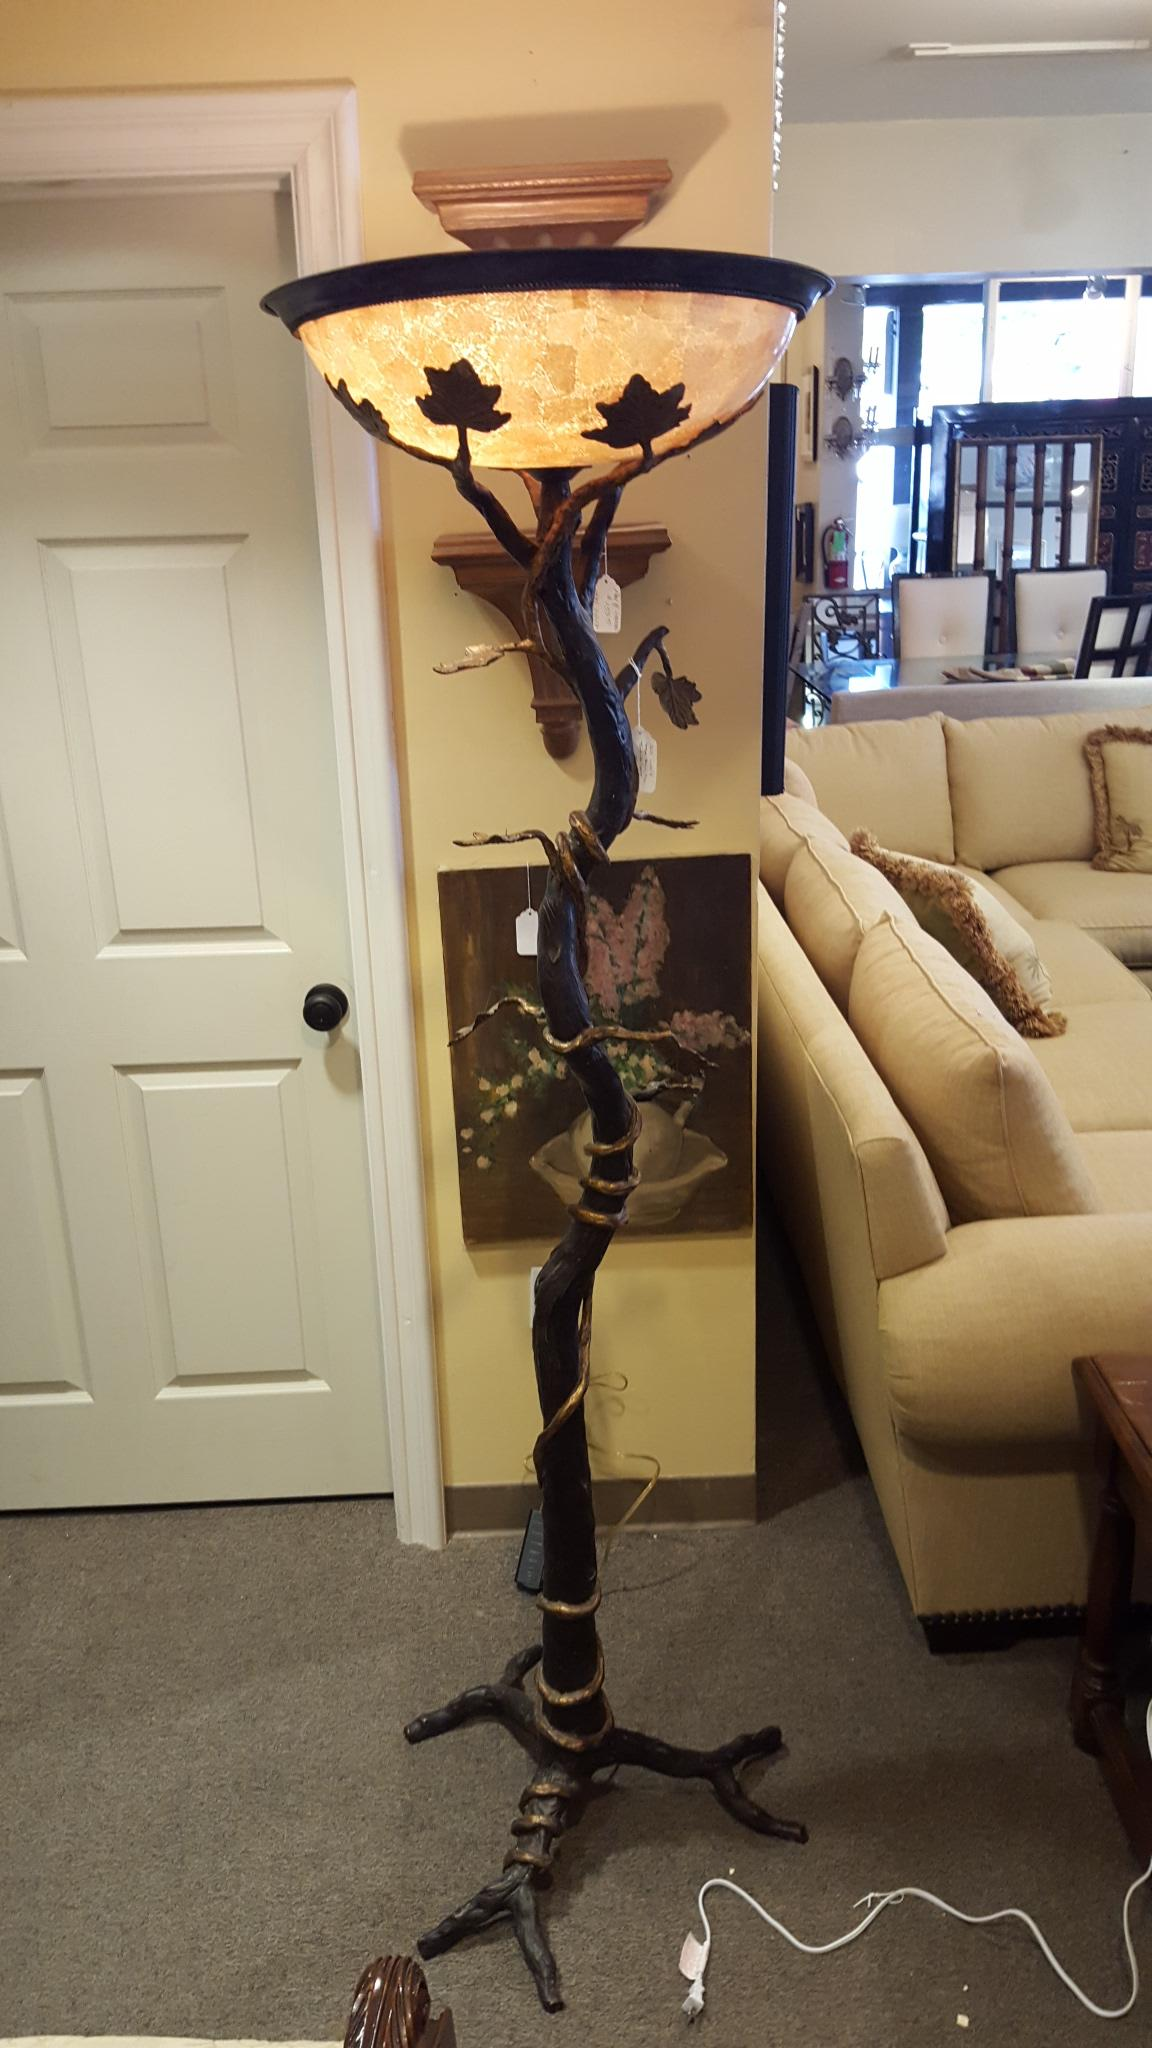 Bean Stalk torchiere floor lamp with Lighting, Lamps Price: $395.00